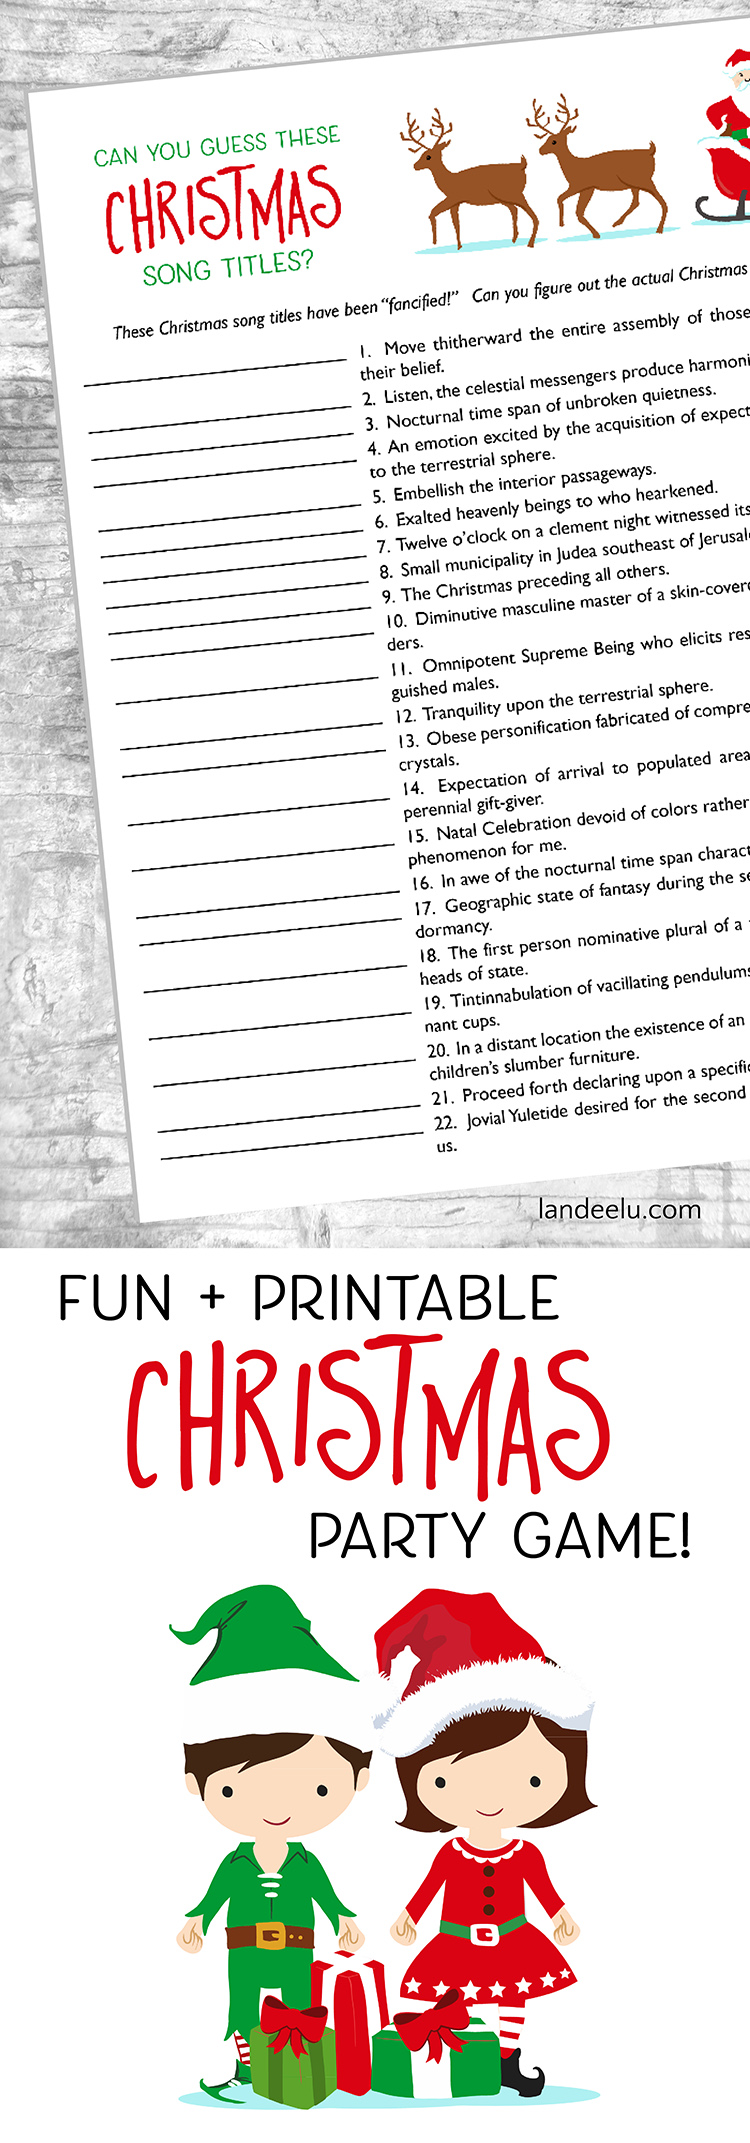 "Christmas Games Free Printables:  Guess the Christmas Songs! | Landeelu - Looking for fun Christmas games to play at your Christmas party? This is a fun ""guess these Christmas song titles"" game that anyone can play!"